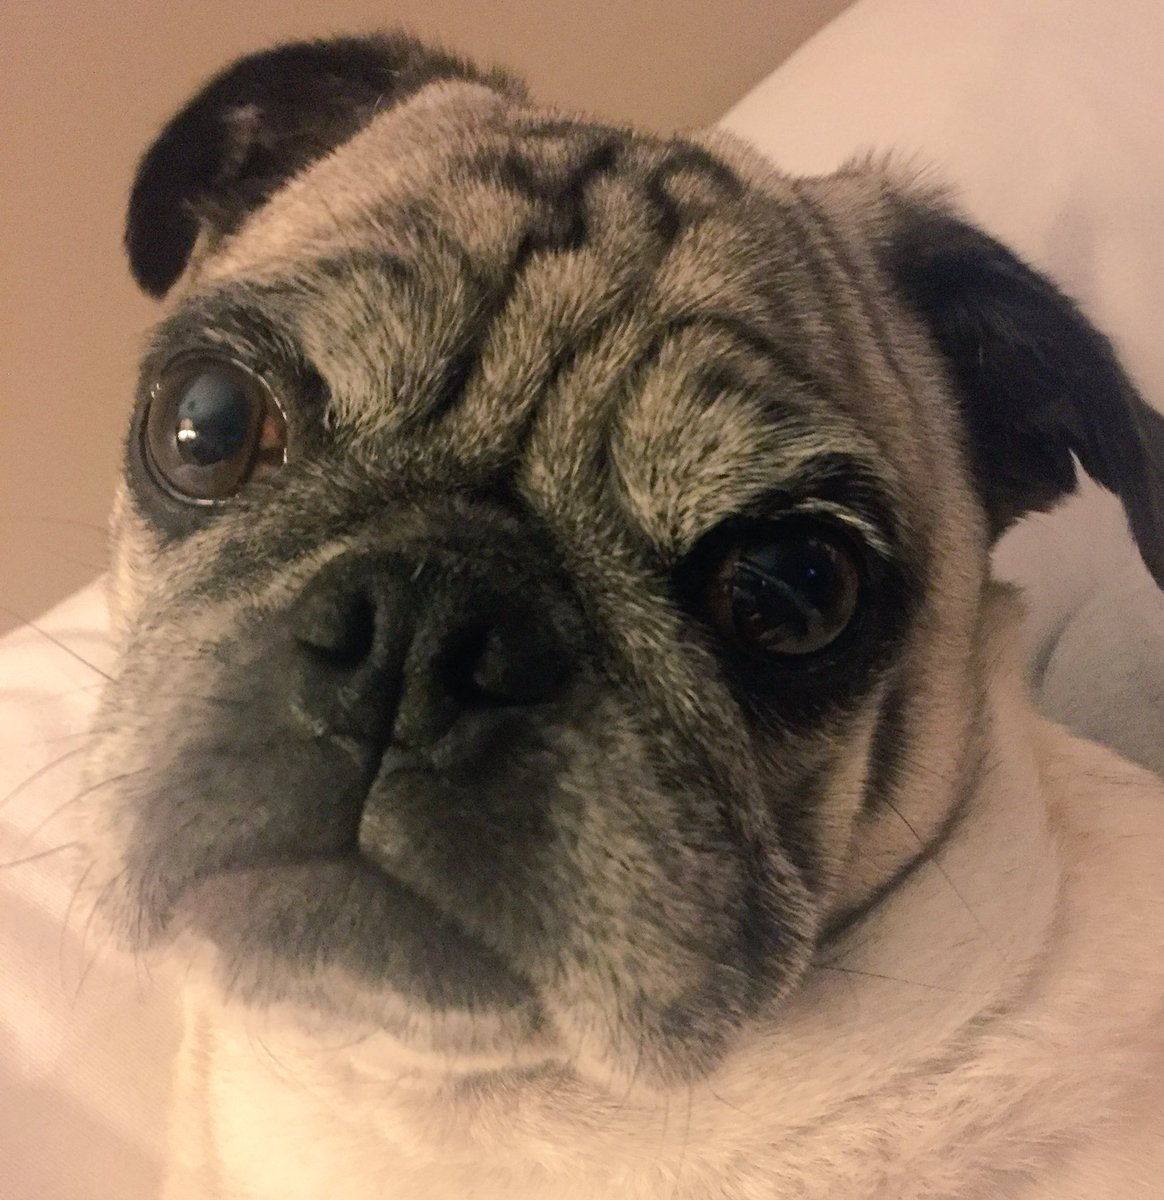 Momma, where you been? You came home very late tonight. I don't like having dinner late! #puglife #elvis #latedinner<br>http://pic.twitter.com/PqZrzxCdKg